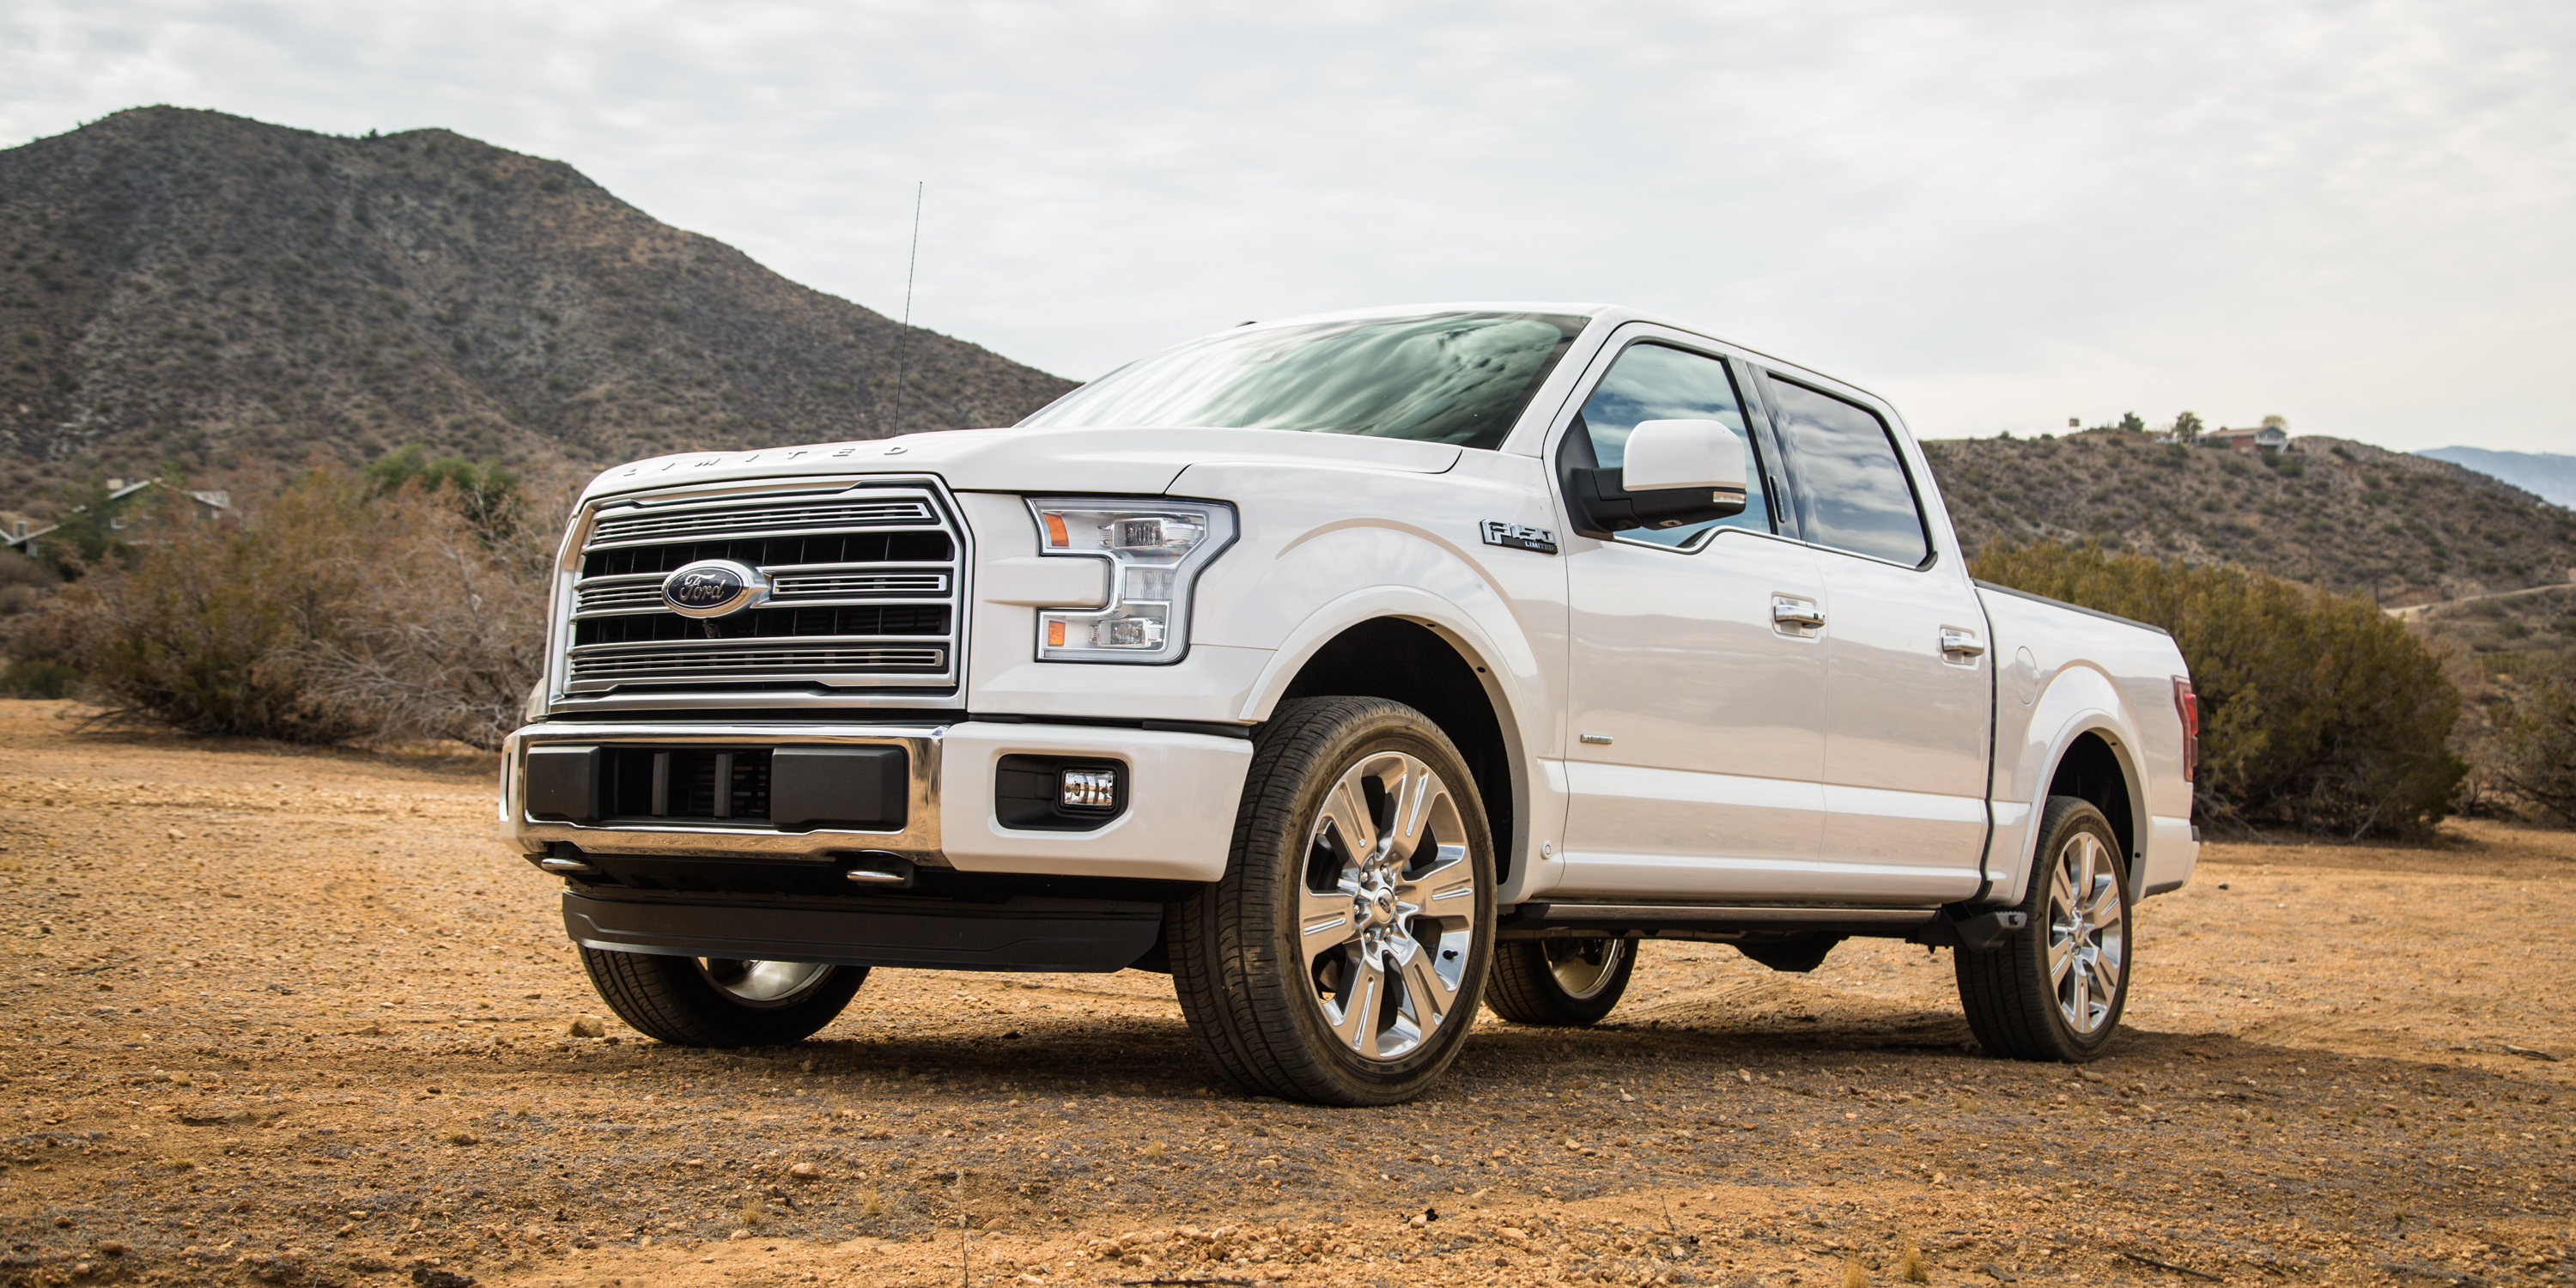 2018 ford f 150 limited new car release date and review 2018 amanda felicia. Black Bedroom Furniture Sets. Home Design Ideas